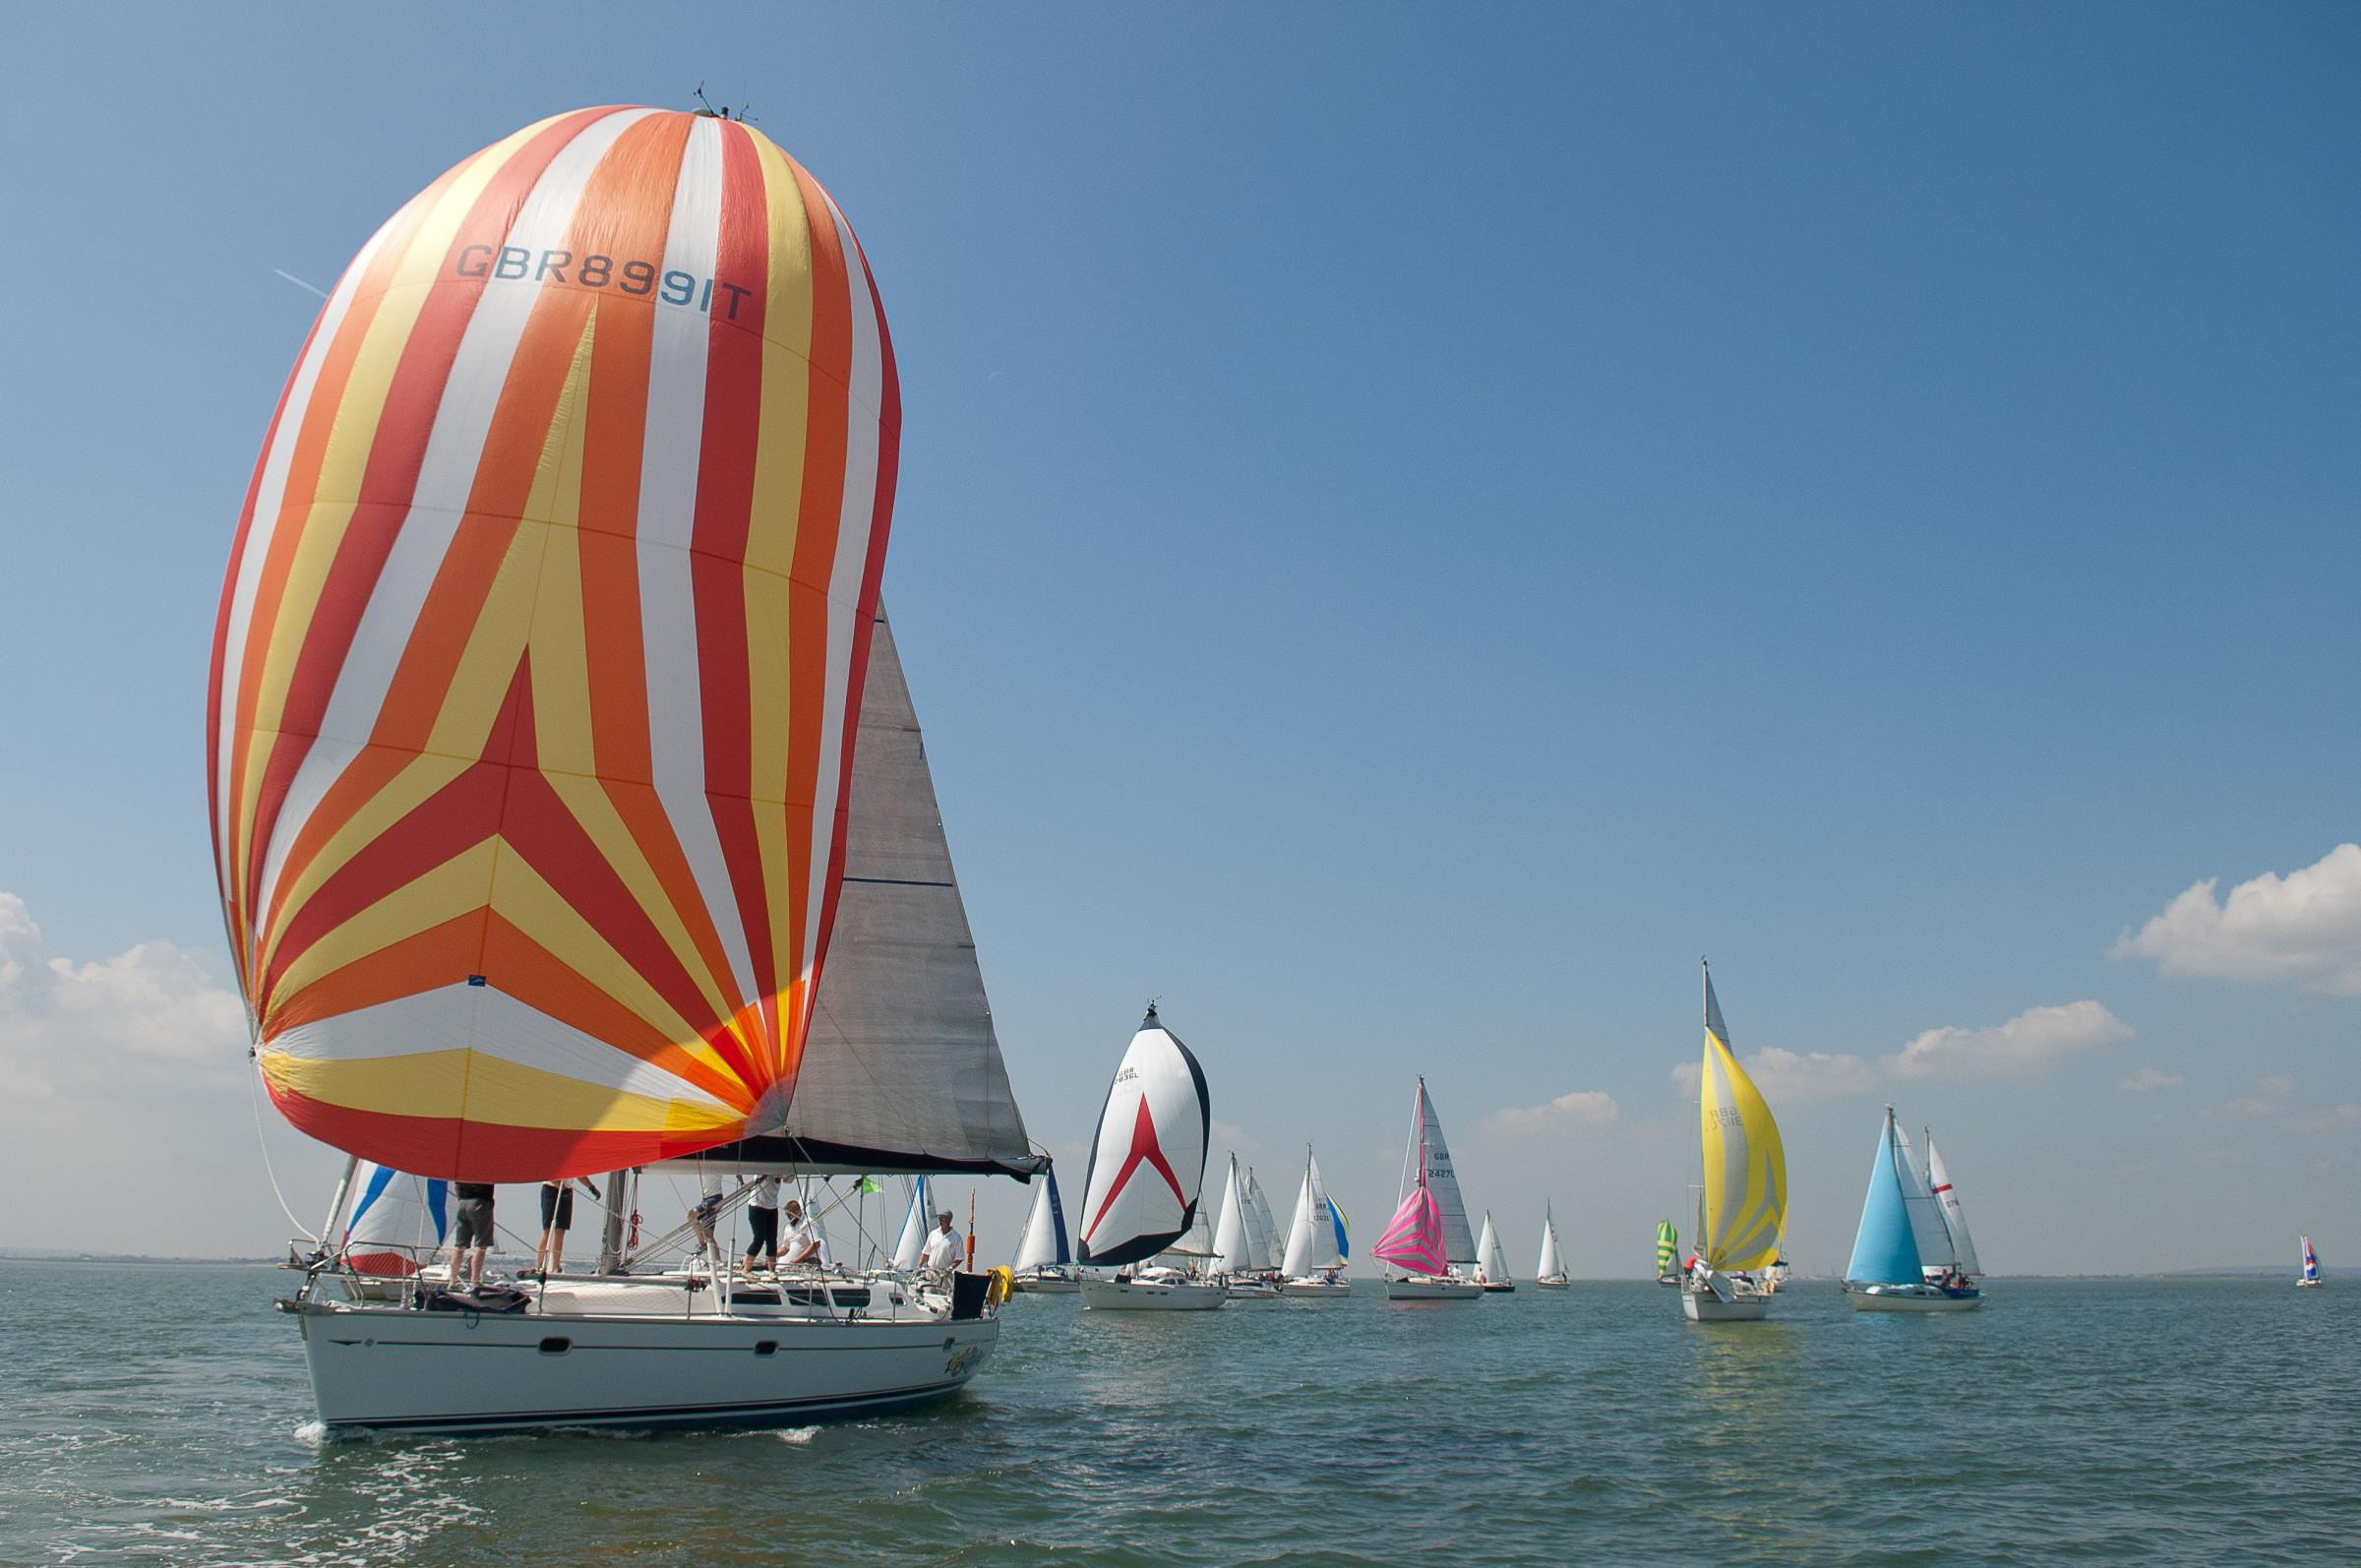 On the water – the colourful fleet racing in the Nore Race